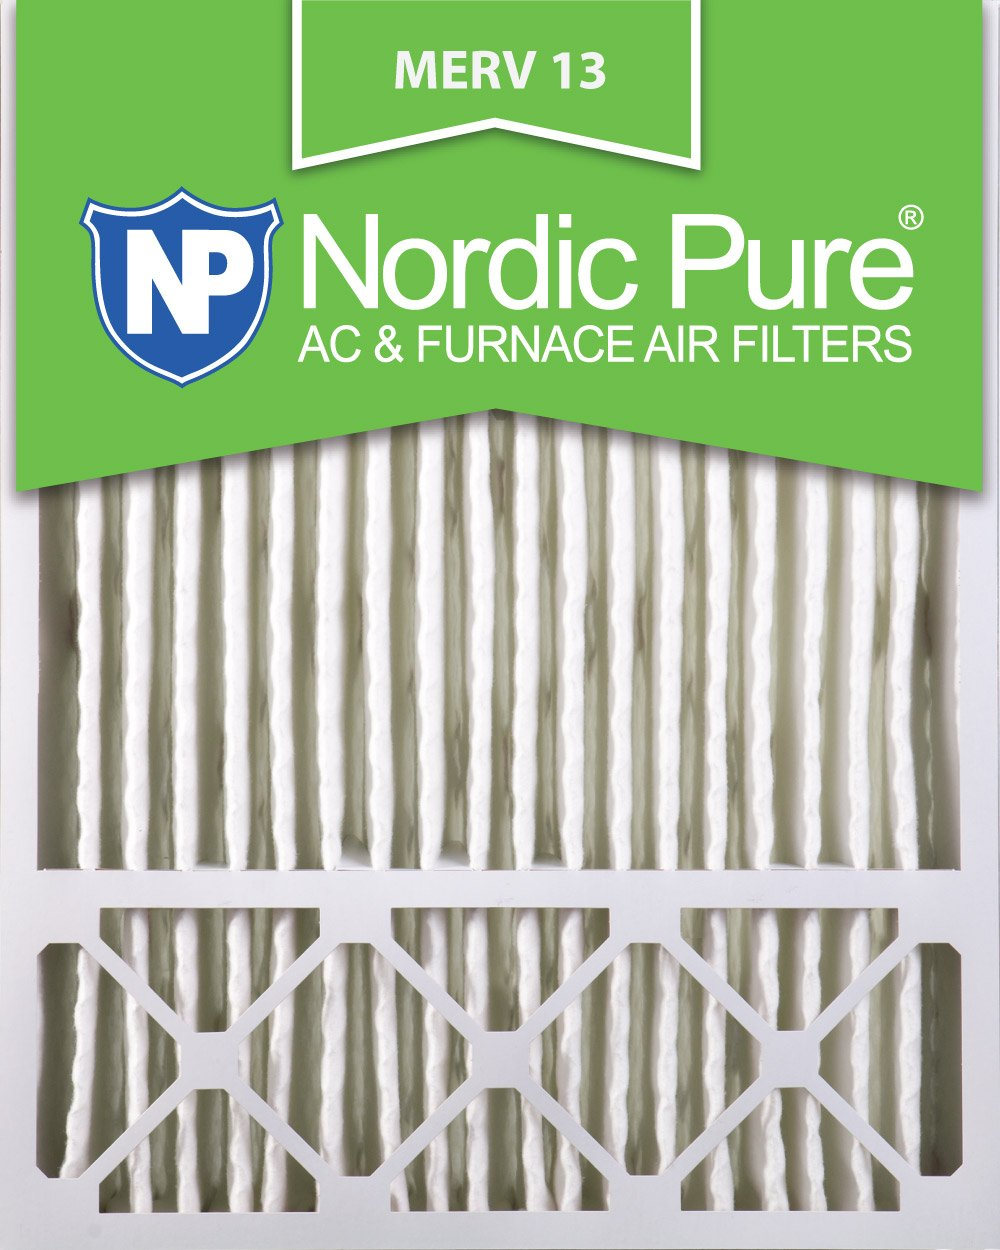 Nordic Pure 20x25x5 (4-3/8 Actual Depth) Lennox X6673_X6675 Replacement MERV 13 Pleated AC Furnace Air Filter, Box of 1